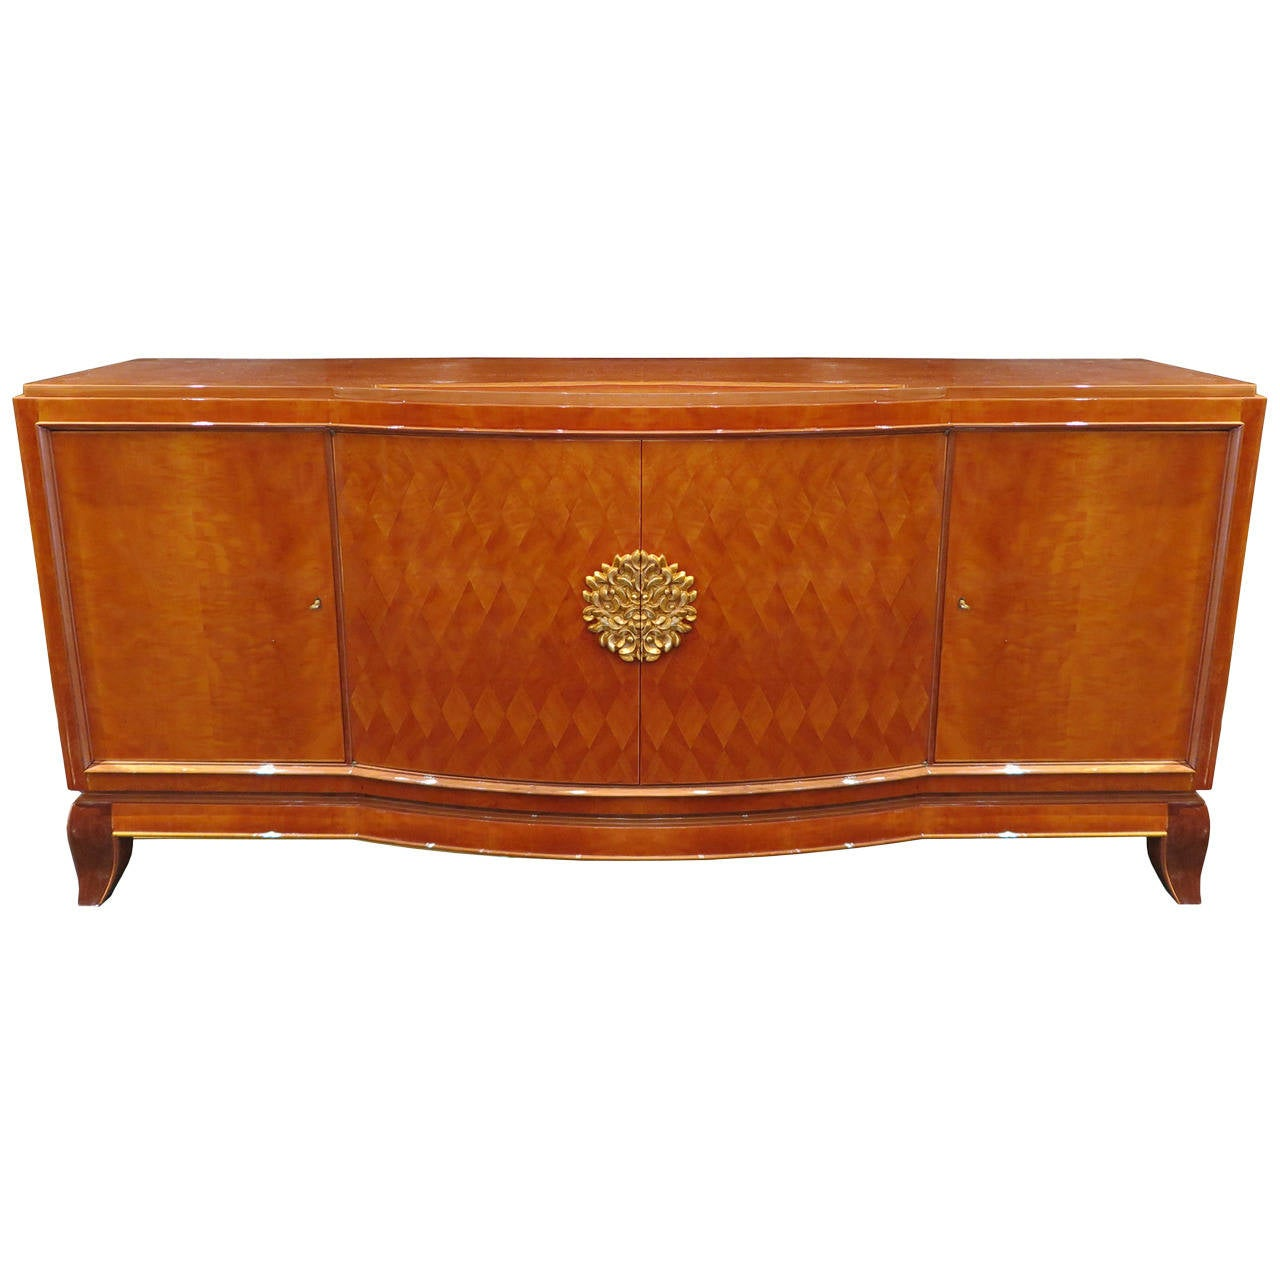 Sycamore Parquetry Sideboard by Jules Leleu and Goulet 1